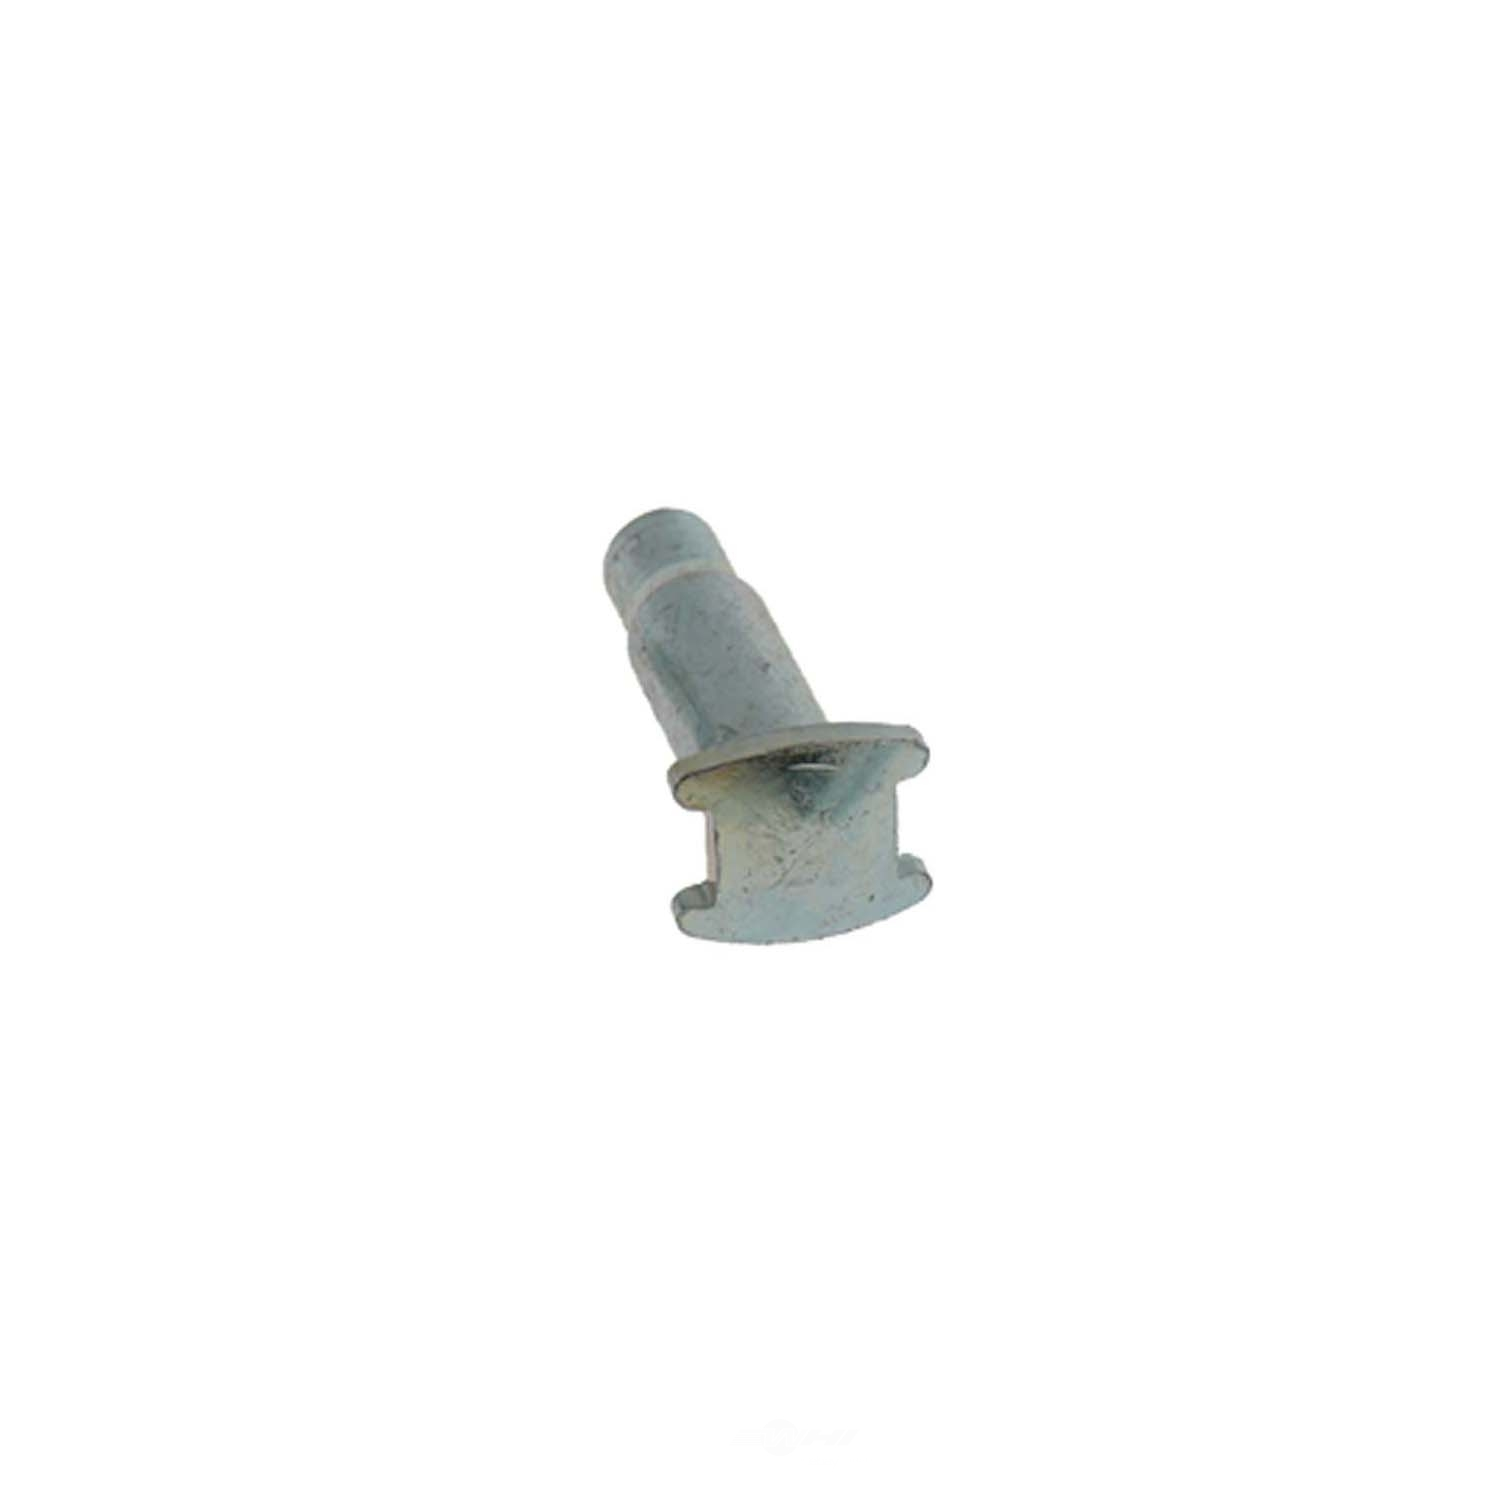 CARLSON QUALITY BRAKE PARTS - Drum Brake Wheel Cylinder Link - CRL H1422-2